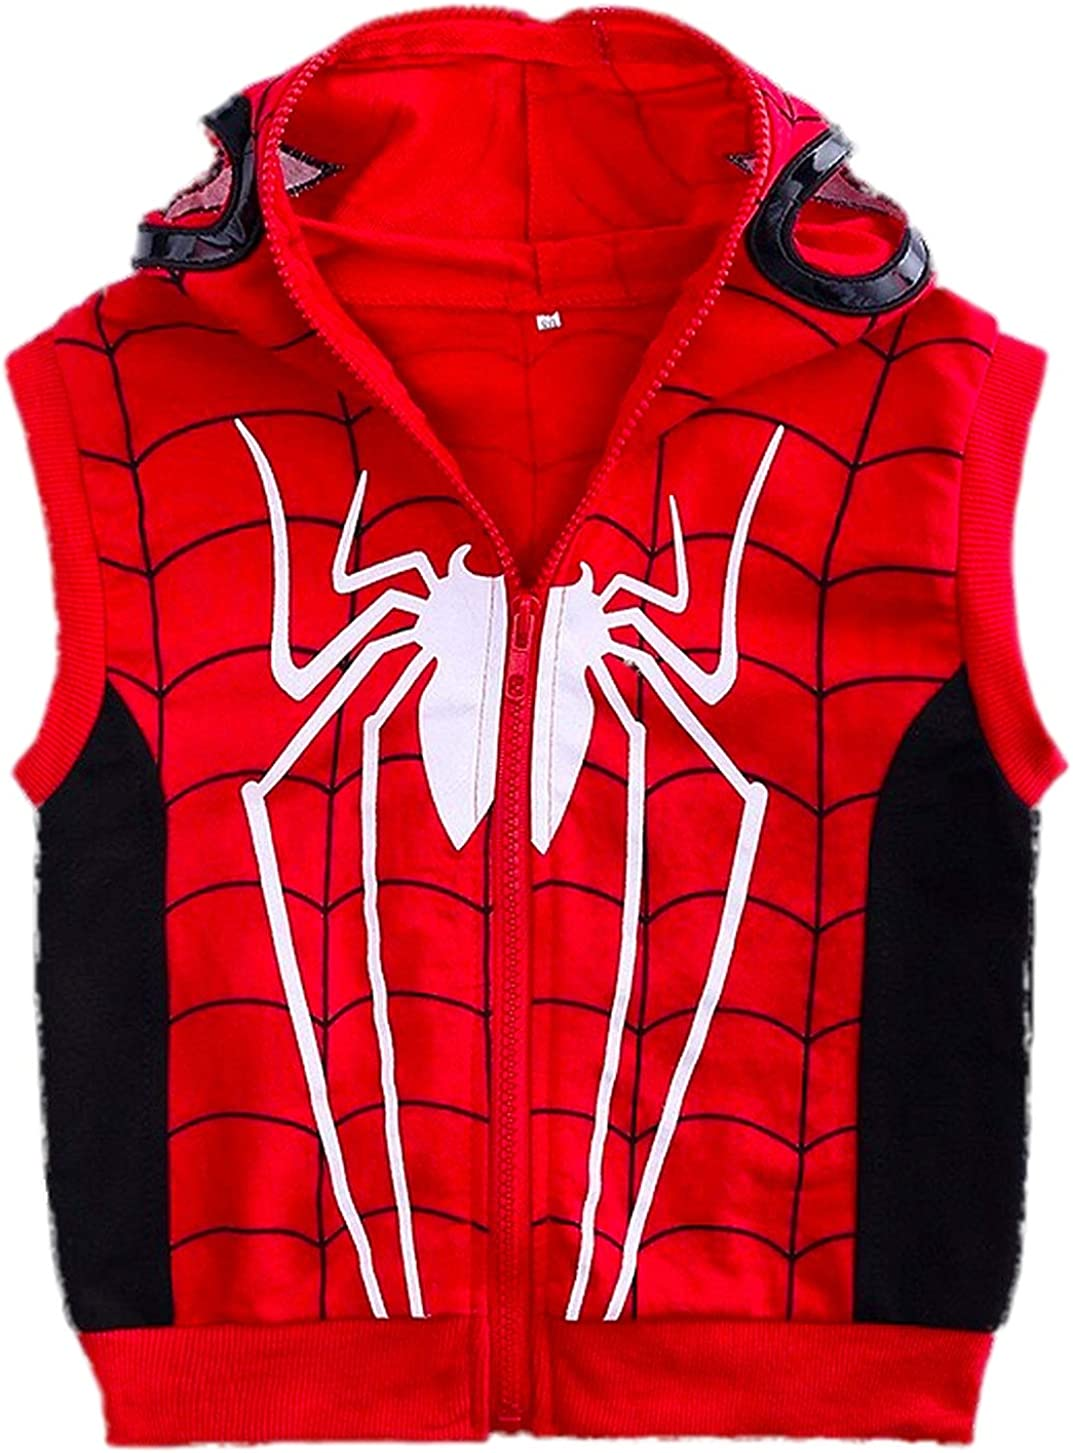 Red Plume Boys Superhero Classic Serices Tracksuits Kids Role Playing Sports Performance Suit